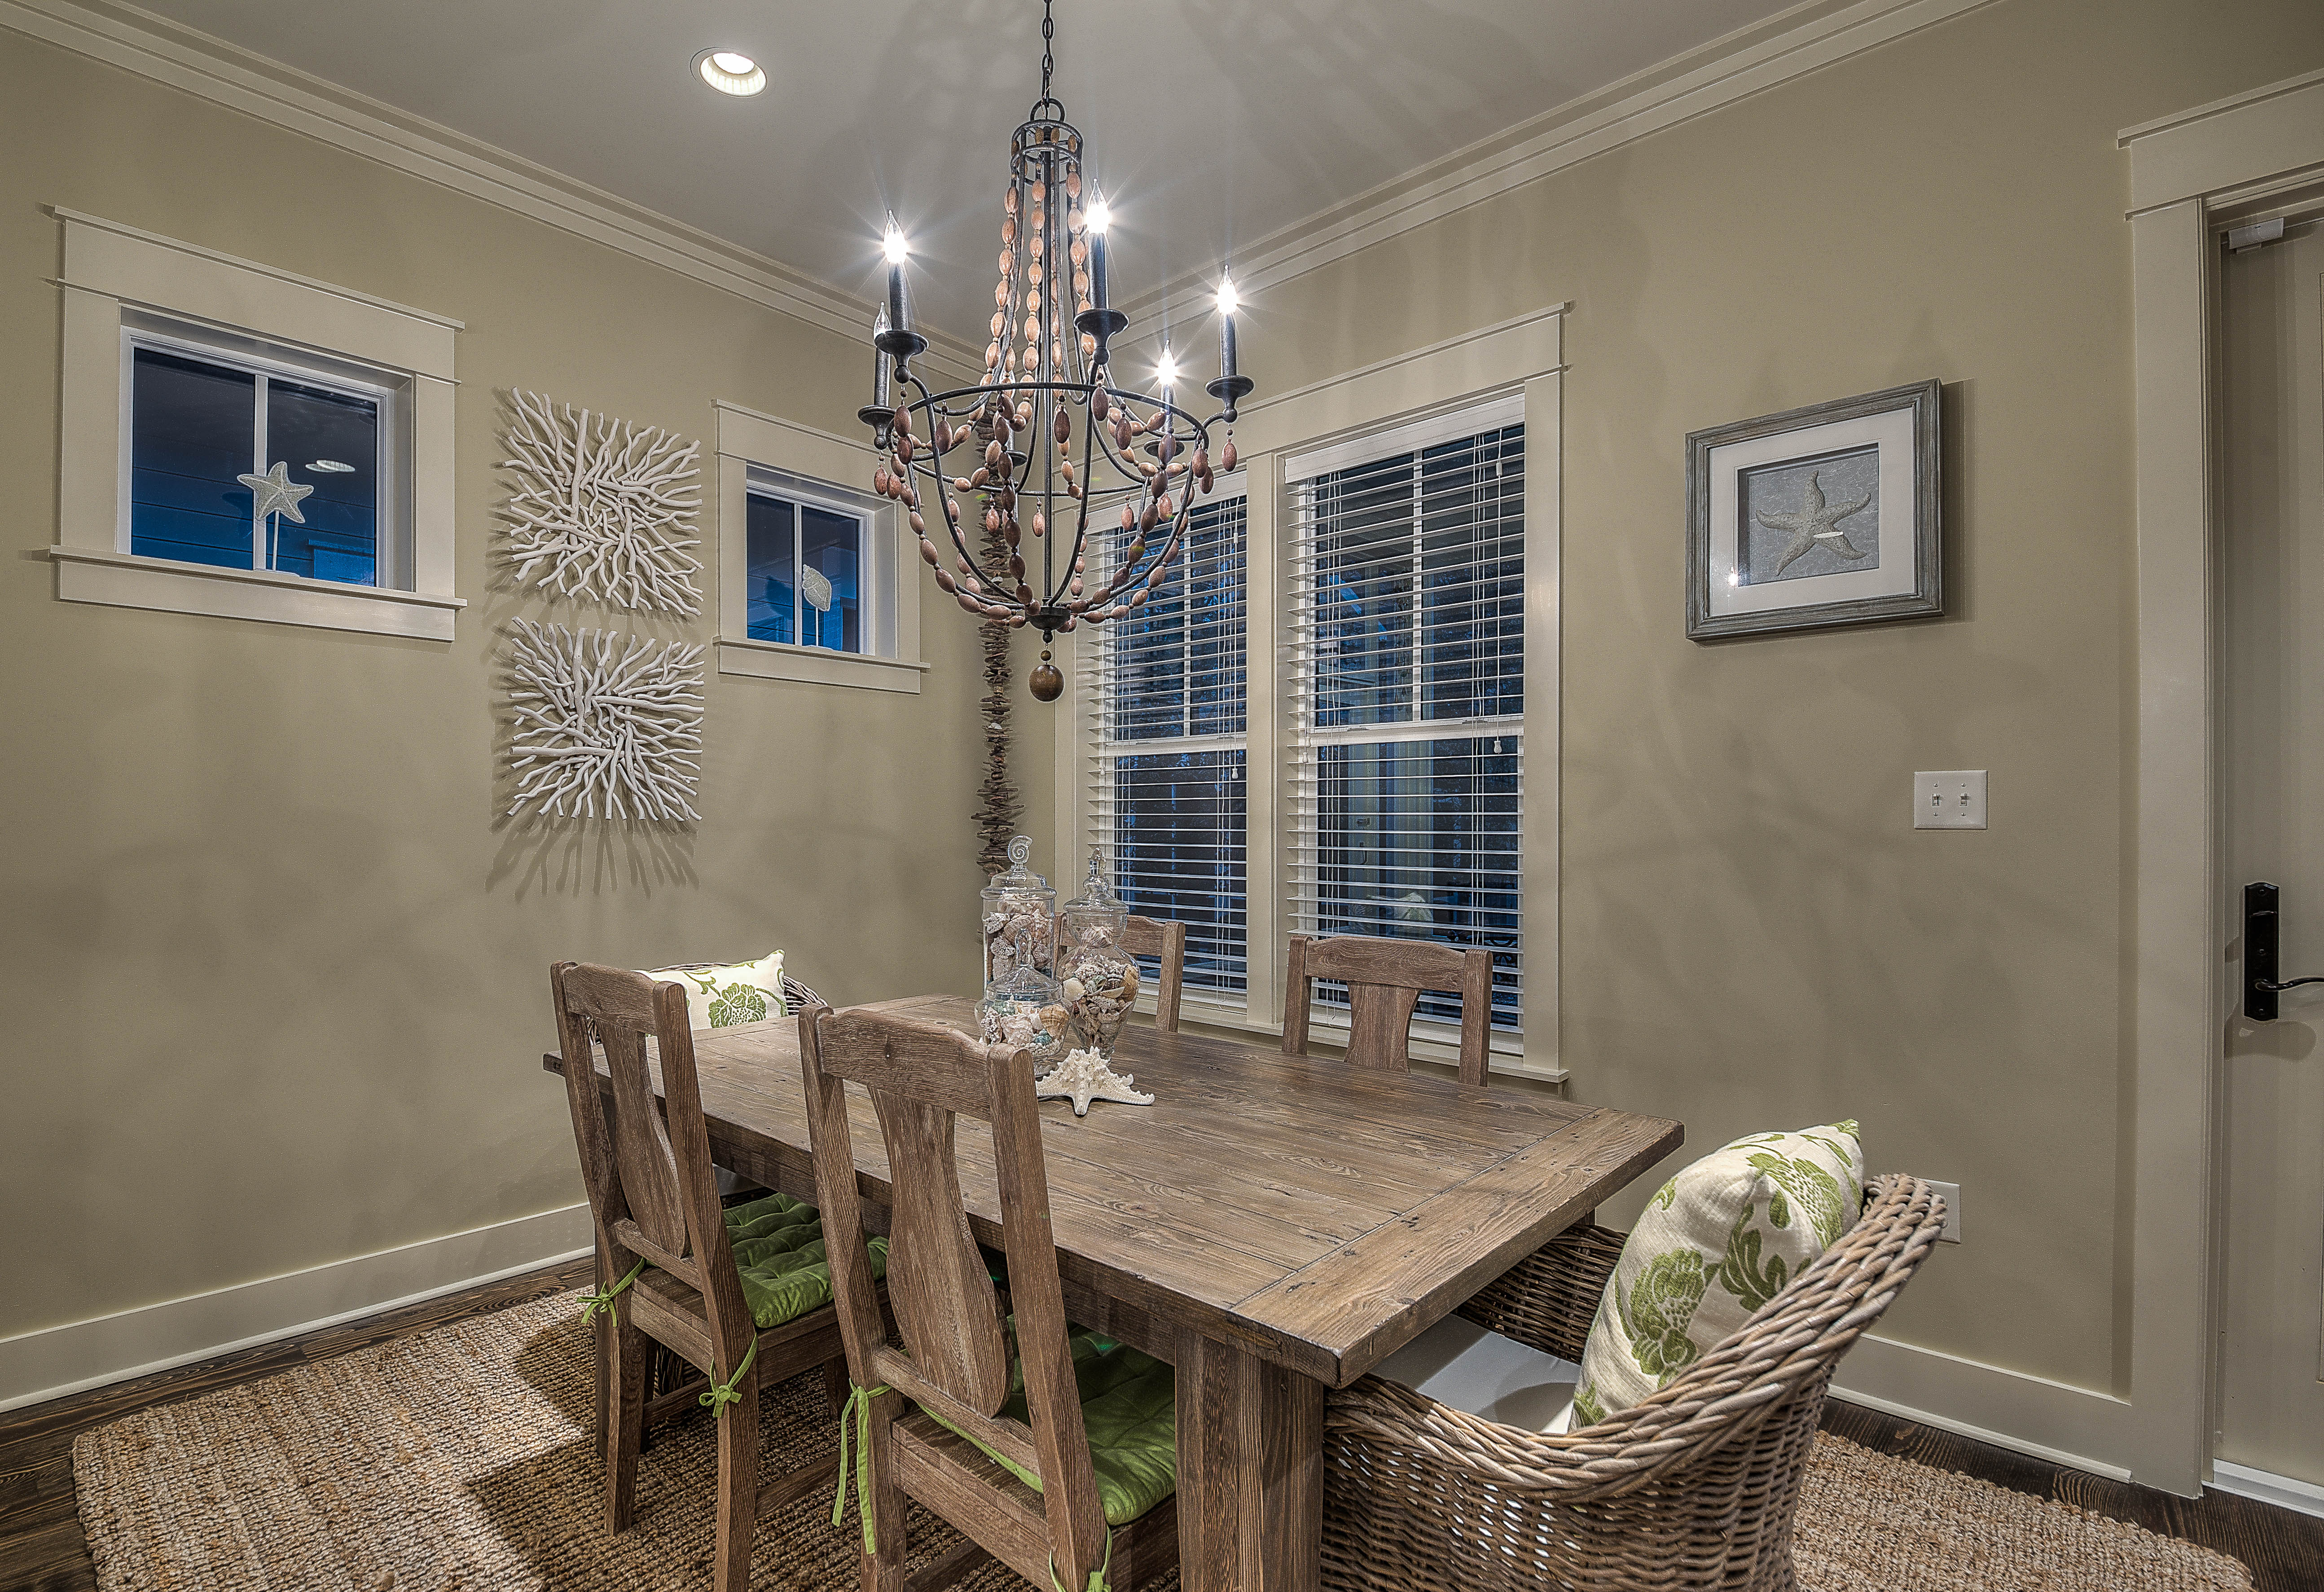 Wonderful dining area with seating for 6 for those home cooked meals